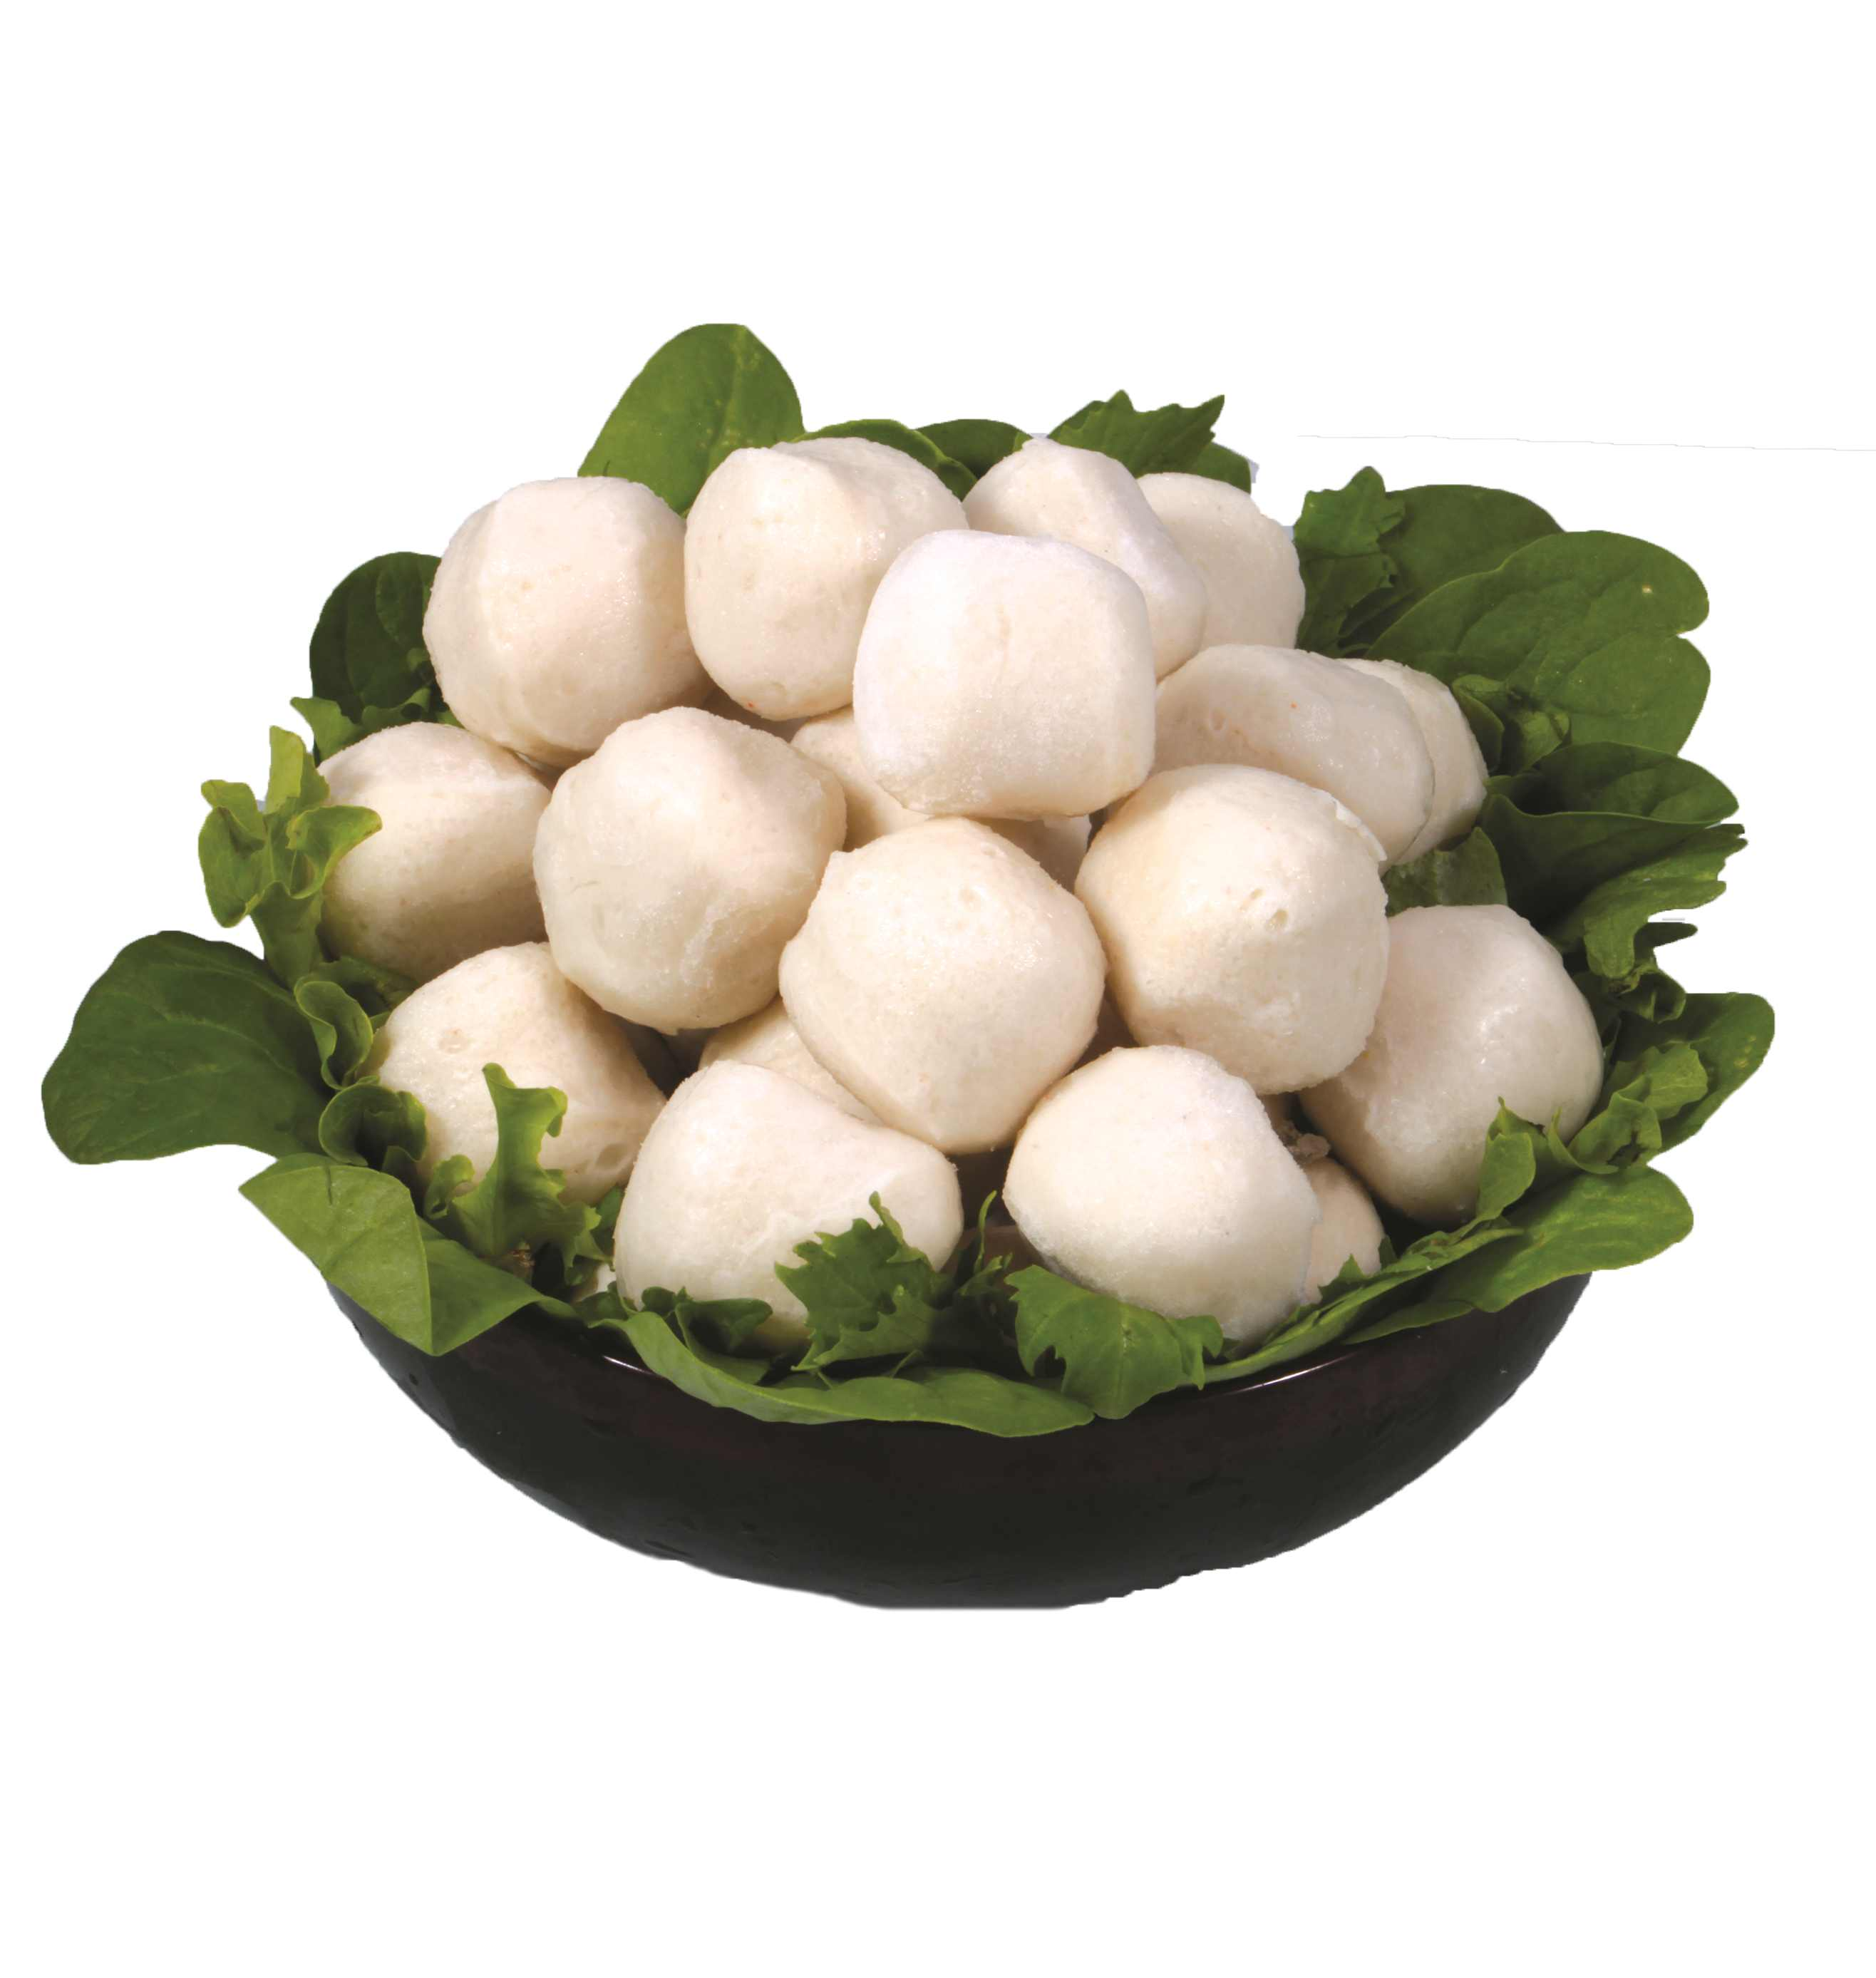 SINGAPORE FISH BALL 10PCS(APP.0.6LB)